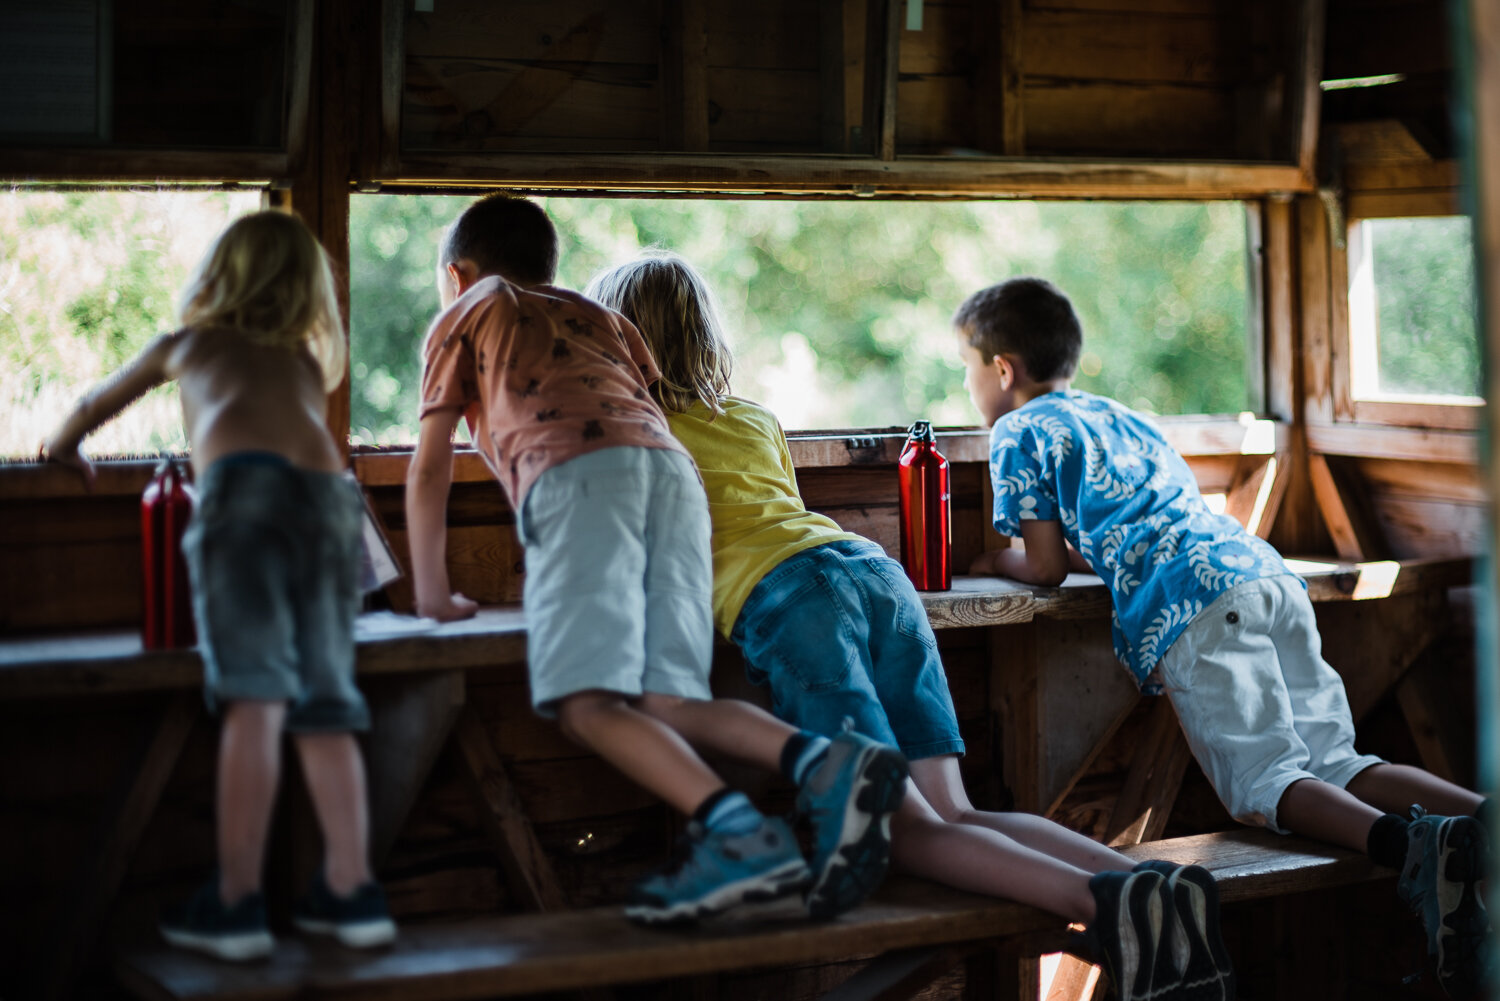 Young children exploring nature at RSPB Rye Meads, Hertfordshire family photographer Diana Hagues